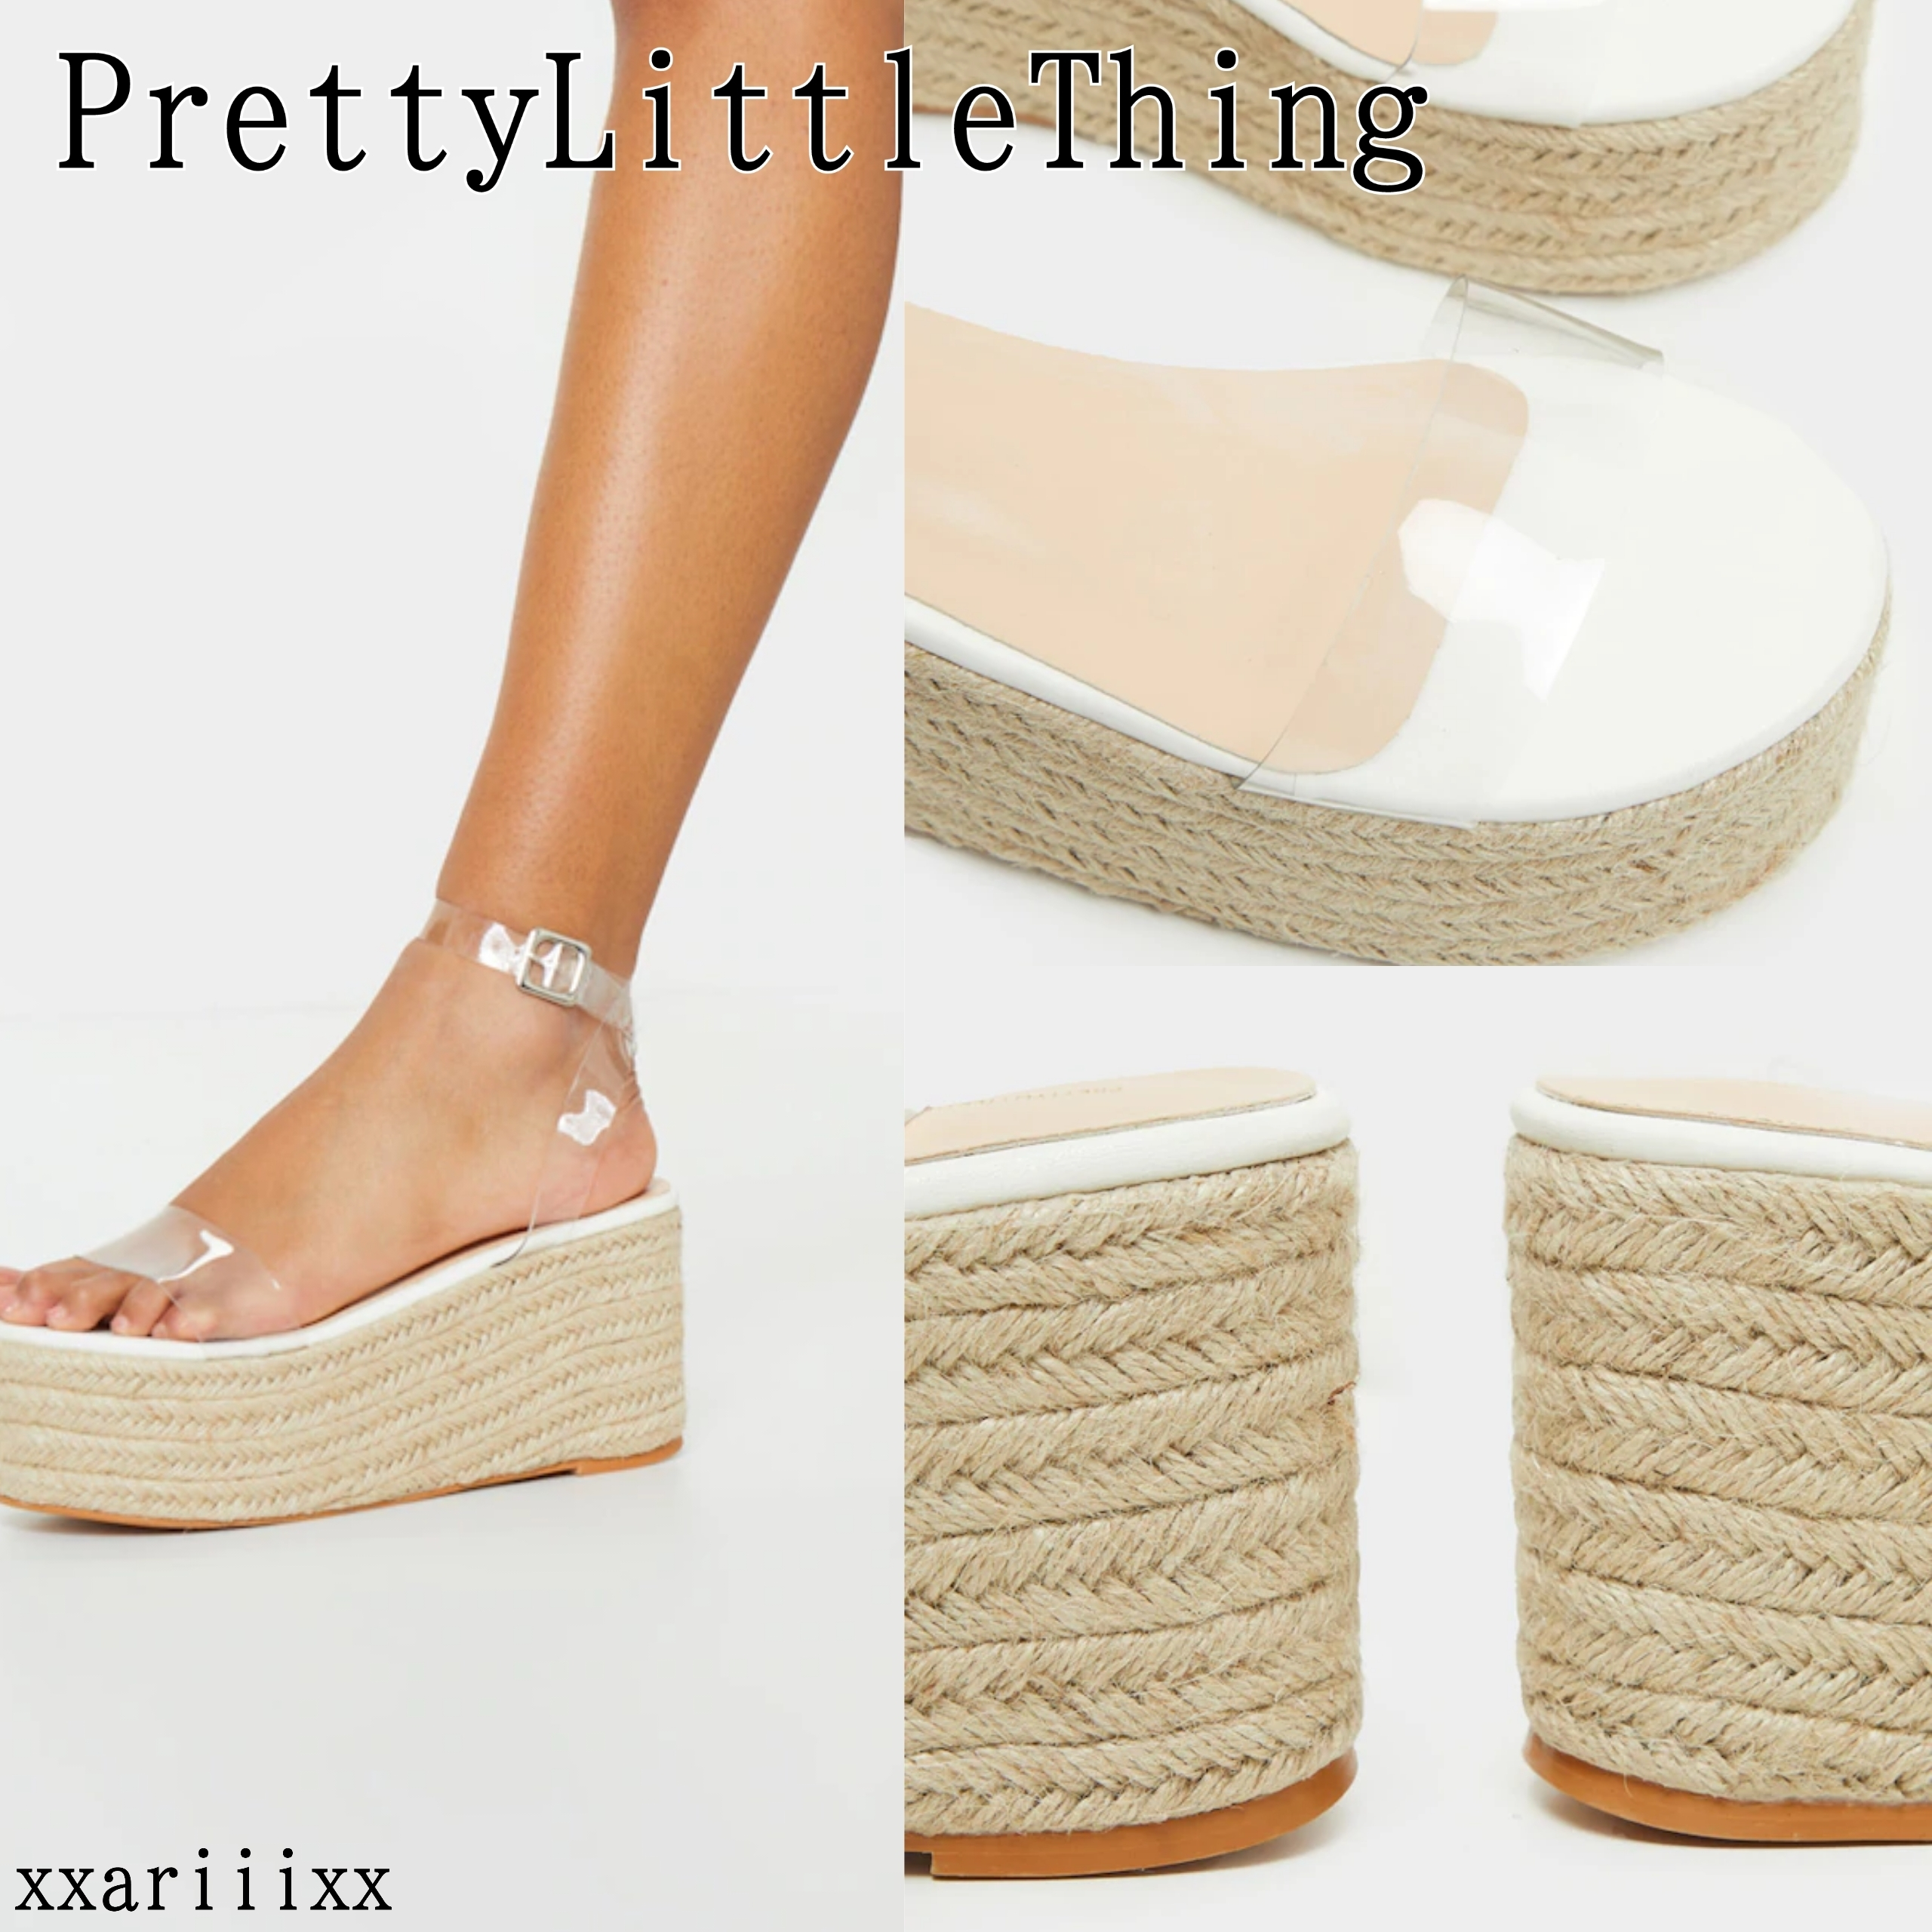 shop prettylittlething shoes